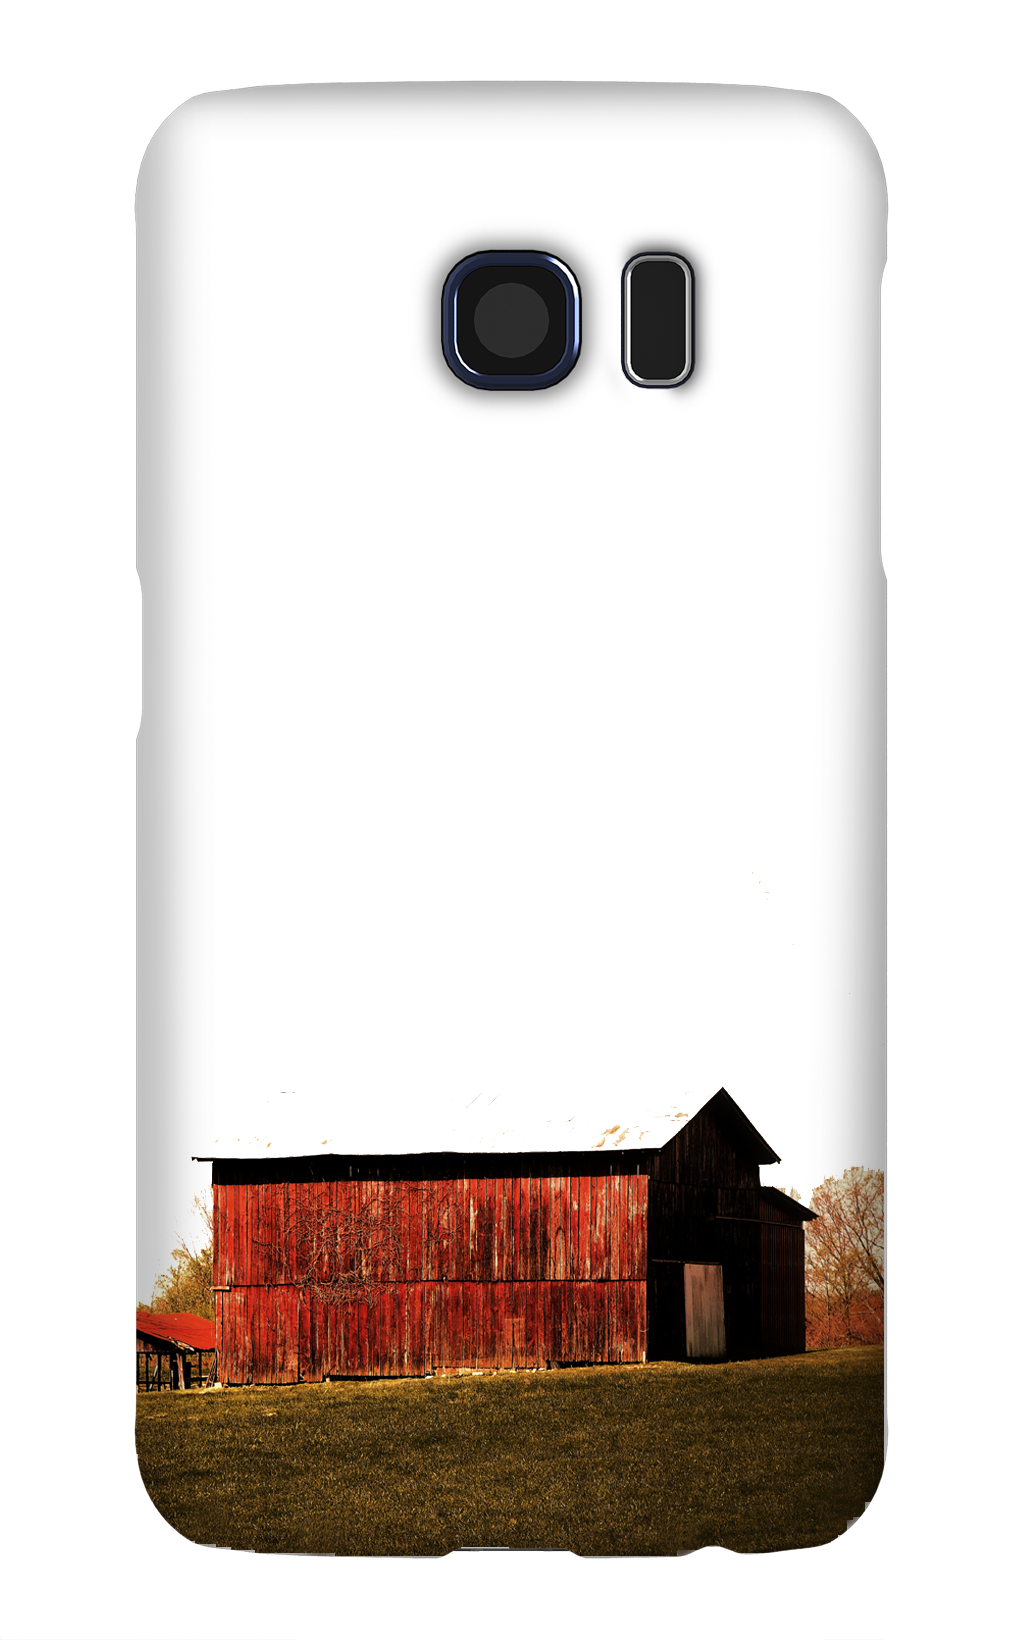 Product, Cellphone Case: Crimson – Red barn bathed in sunshine with fall foliage